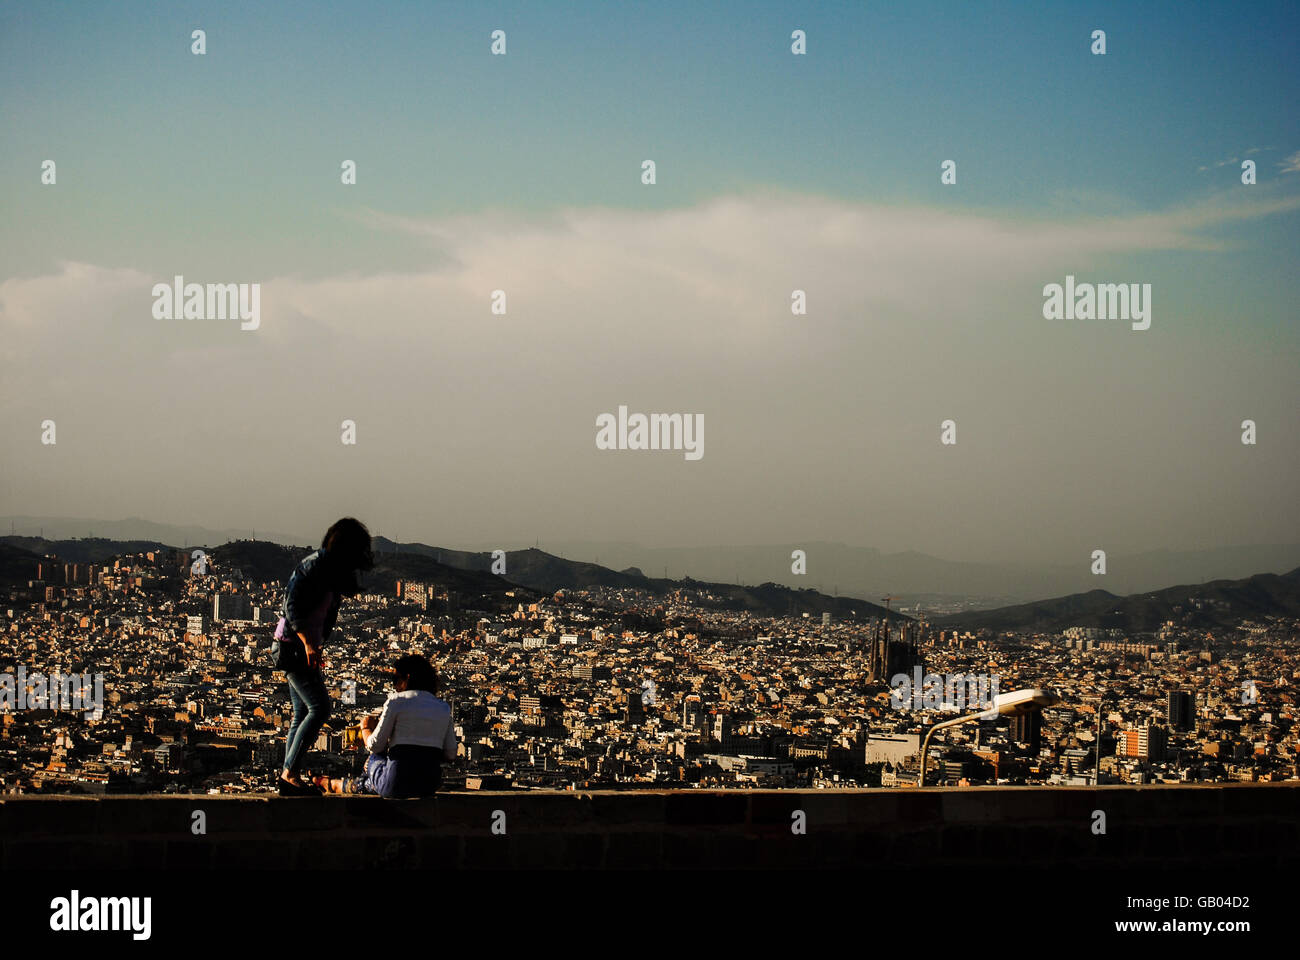 Overlooking beaches and buildings - Stock Image